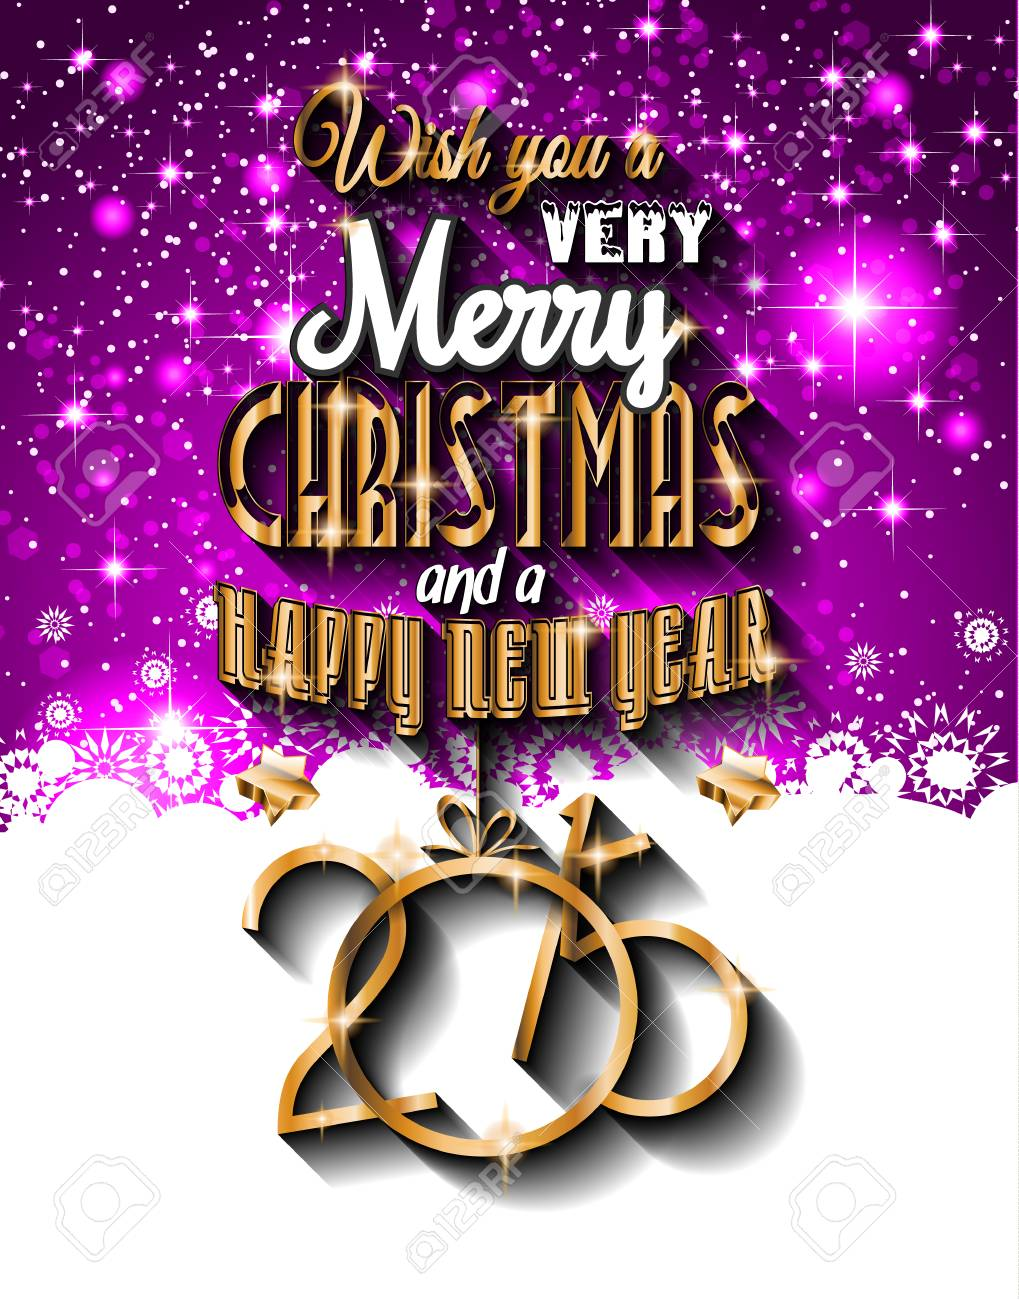 2015 new year and happy christmas background for your flyers 2015 new year and happy christmas background for your flyers invitation party posters m4hsunfo